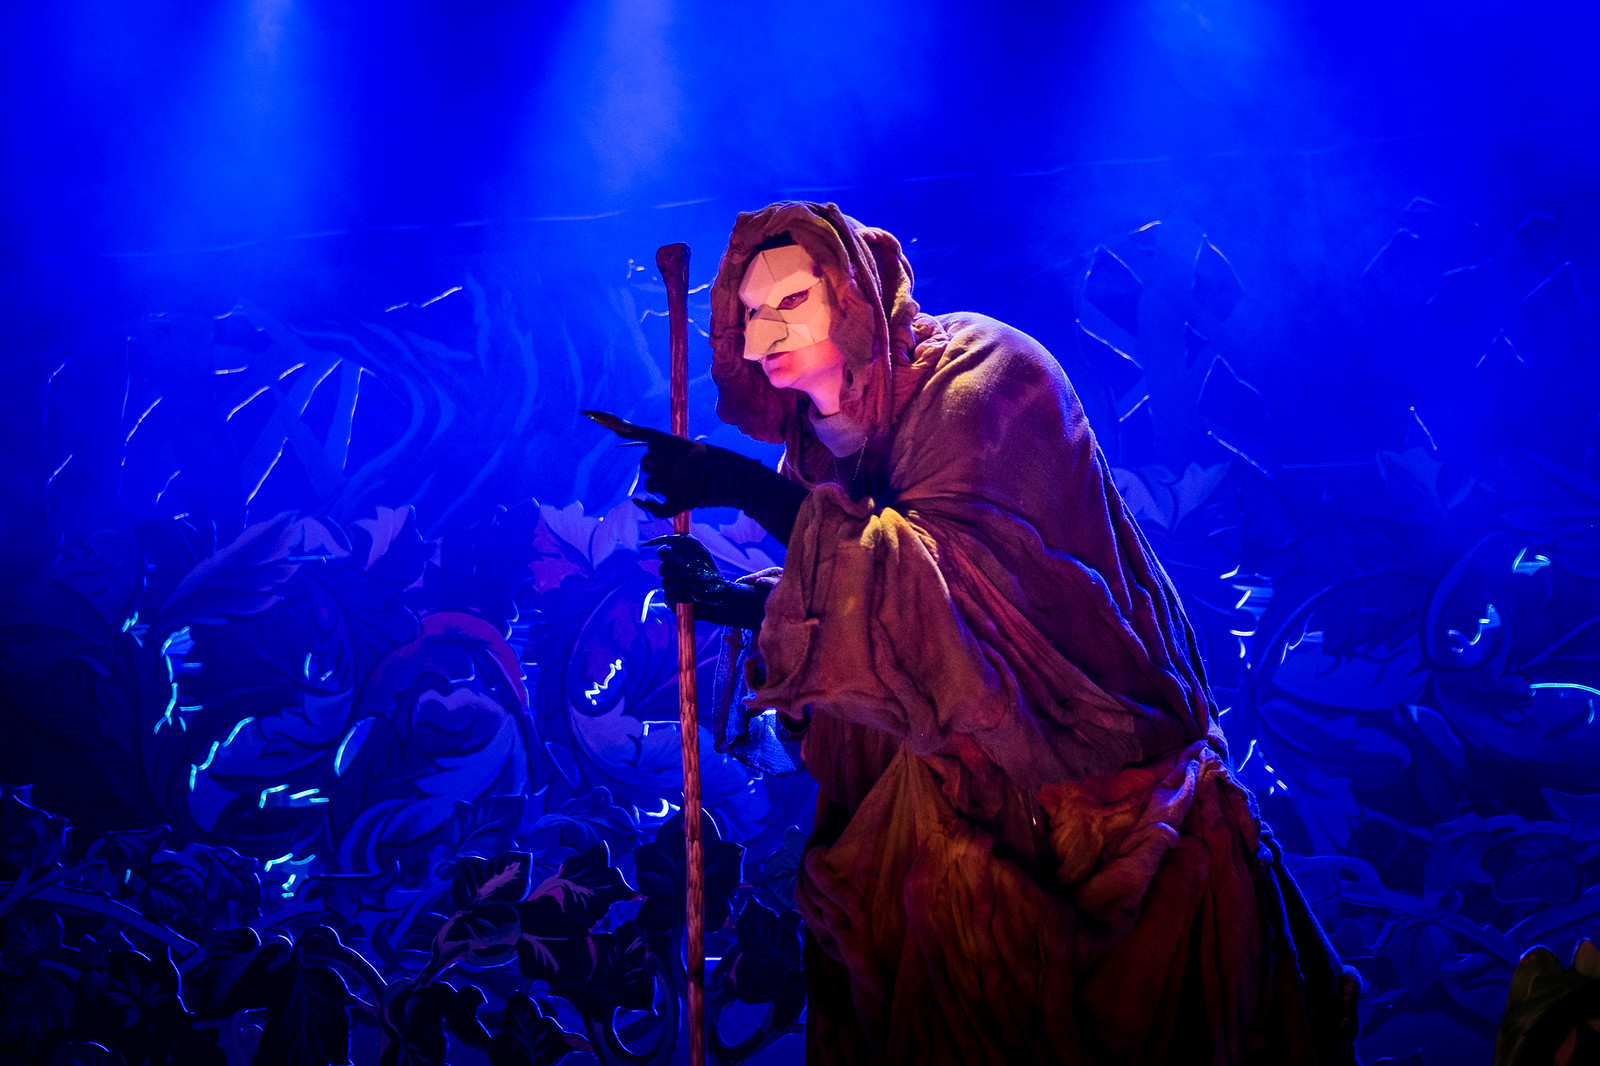 Theatre Ink_Into the woods_Evoke Pictures-139.jpg